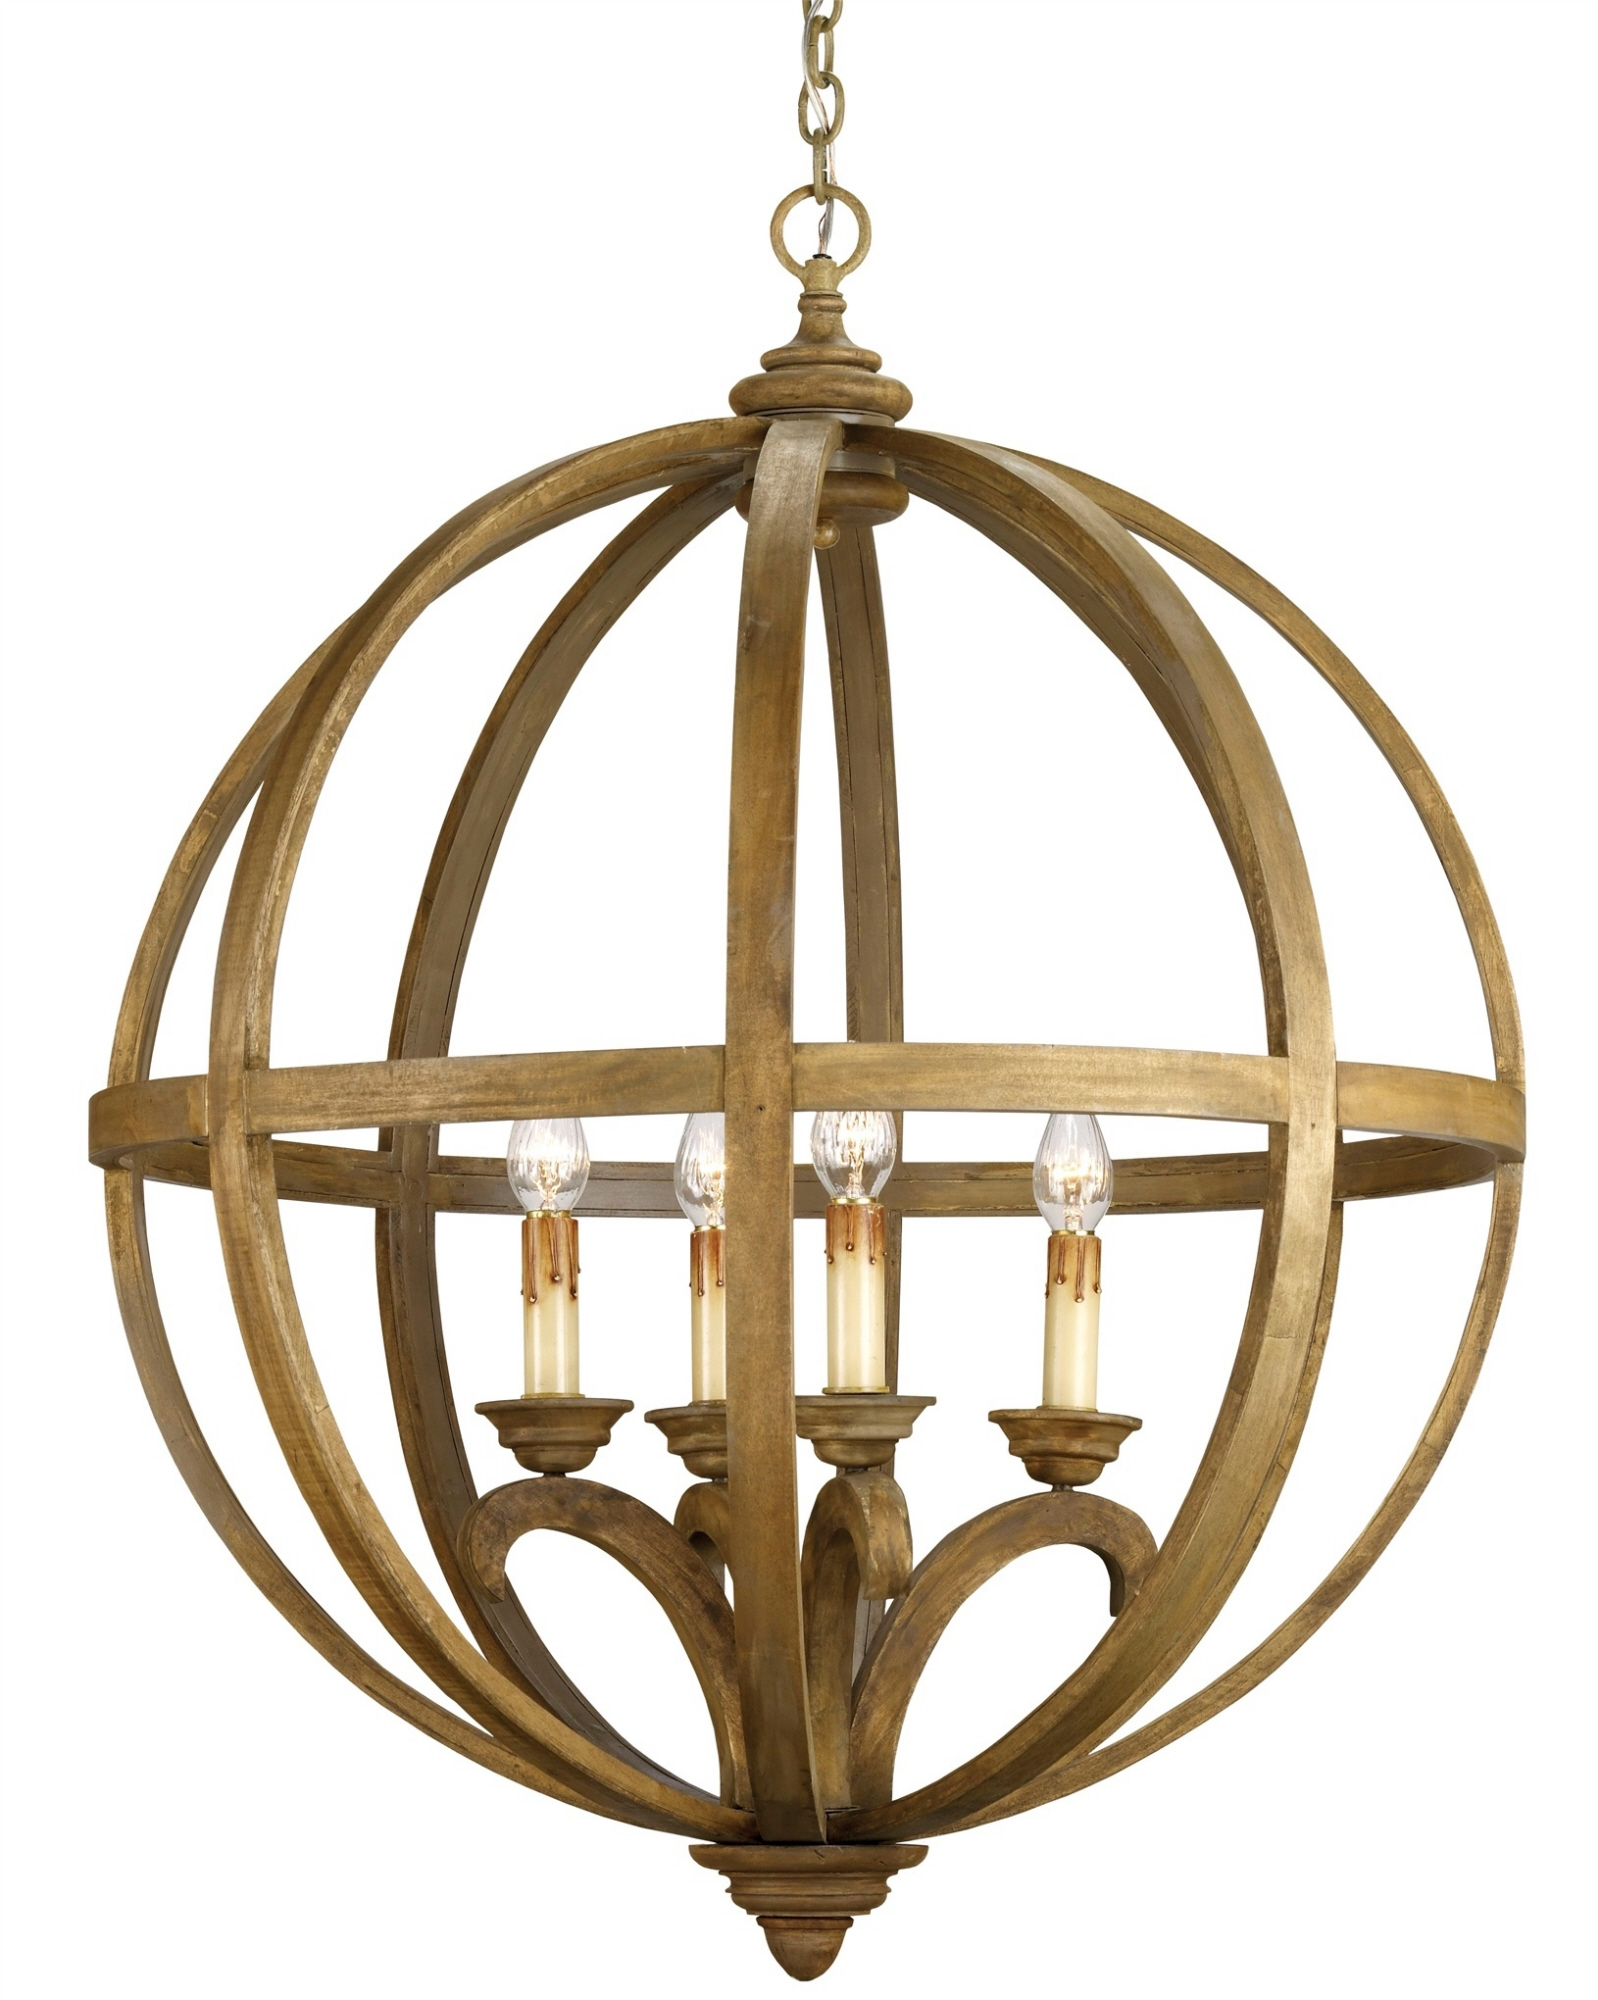 Axel Orb Chandelier Lighting Currey And Company With Regard To Orb Chandelier (Image 2 of 15)